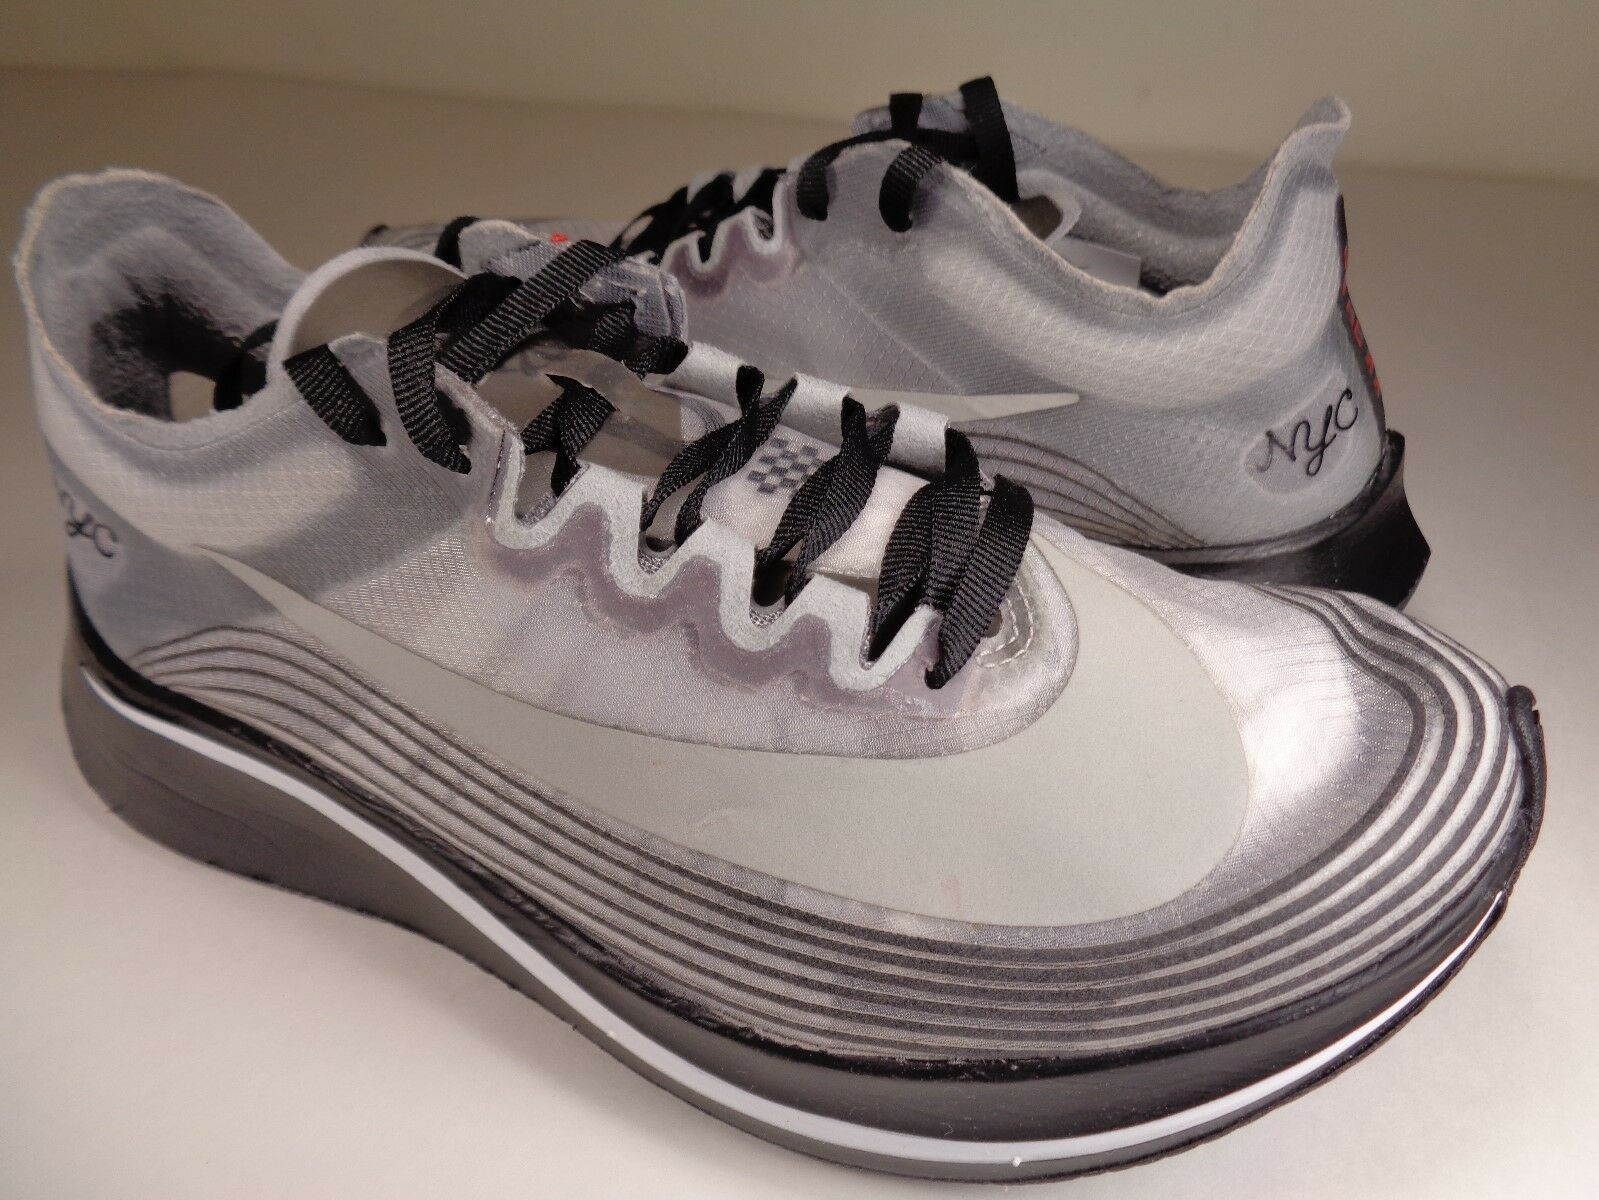 Womens Nikelab Zoom Fly NYC Black White New York City Marathon SZ 6 (AH5088-001)